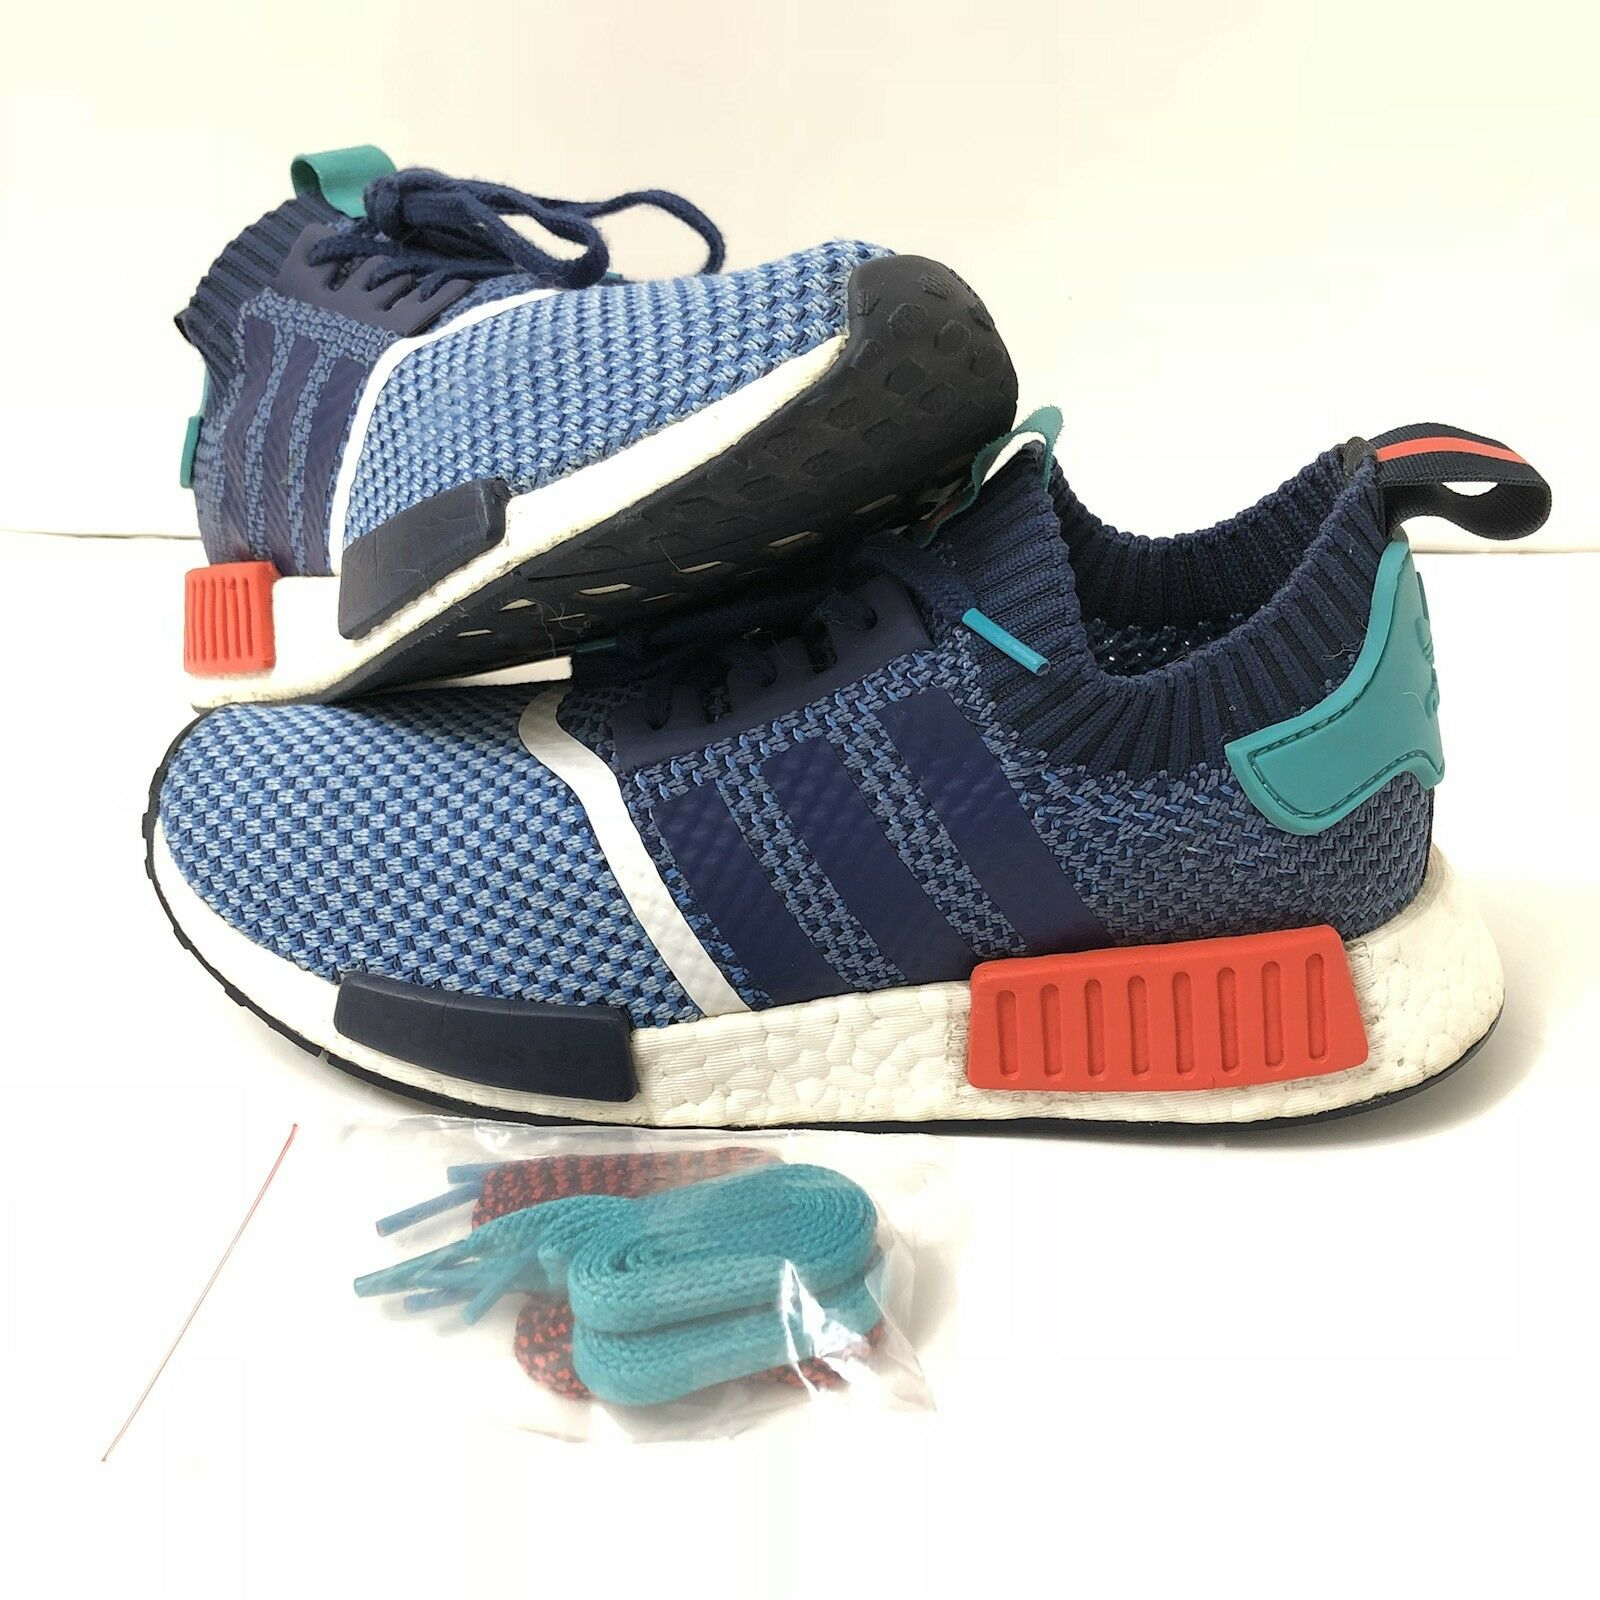 Adidas NMD R1 PK | Packer | Men's Size 8.5